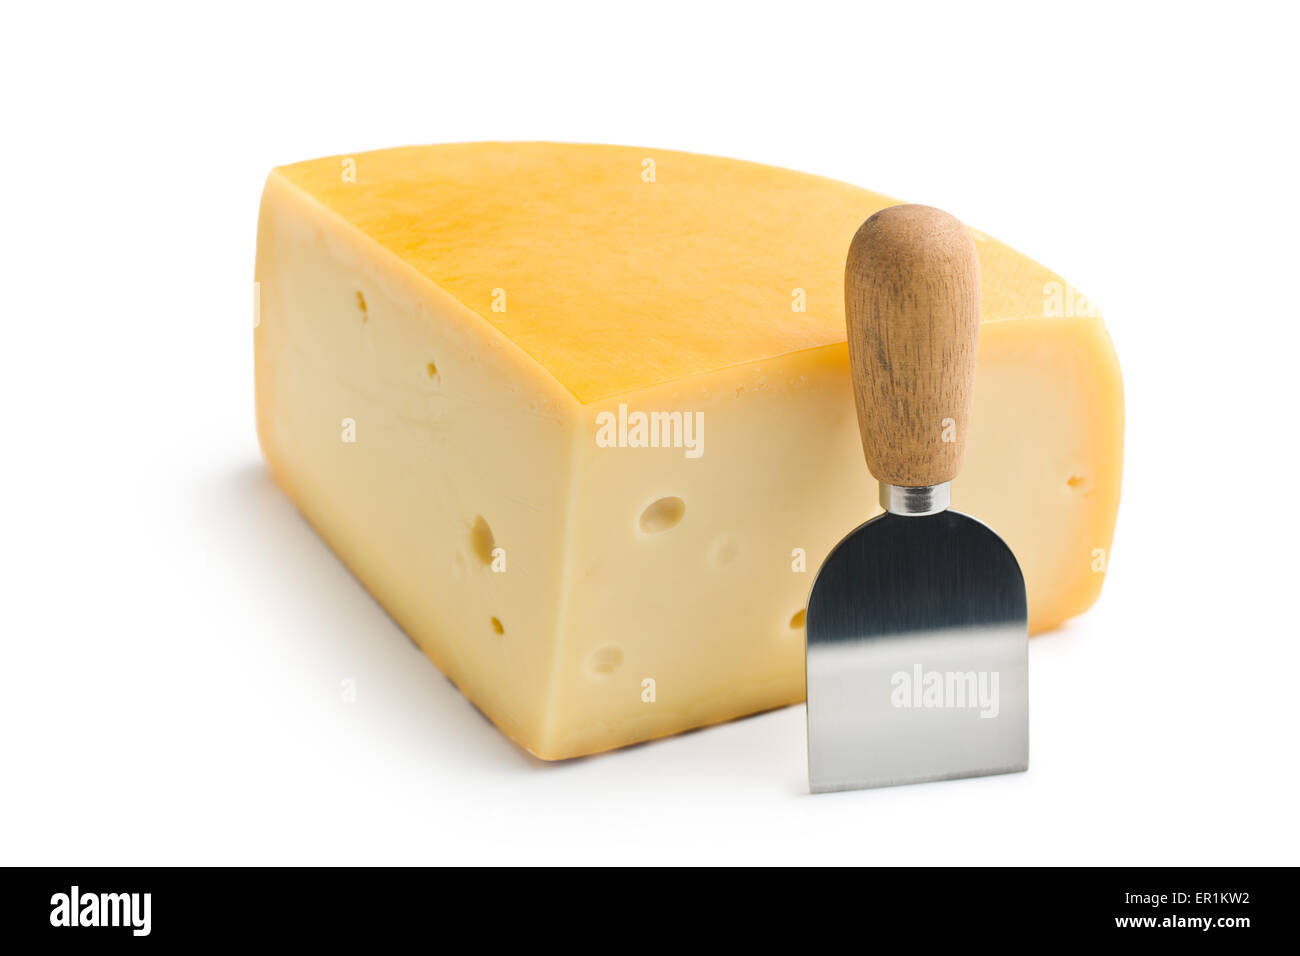 edam cheese and knife on white background - Stock Image